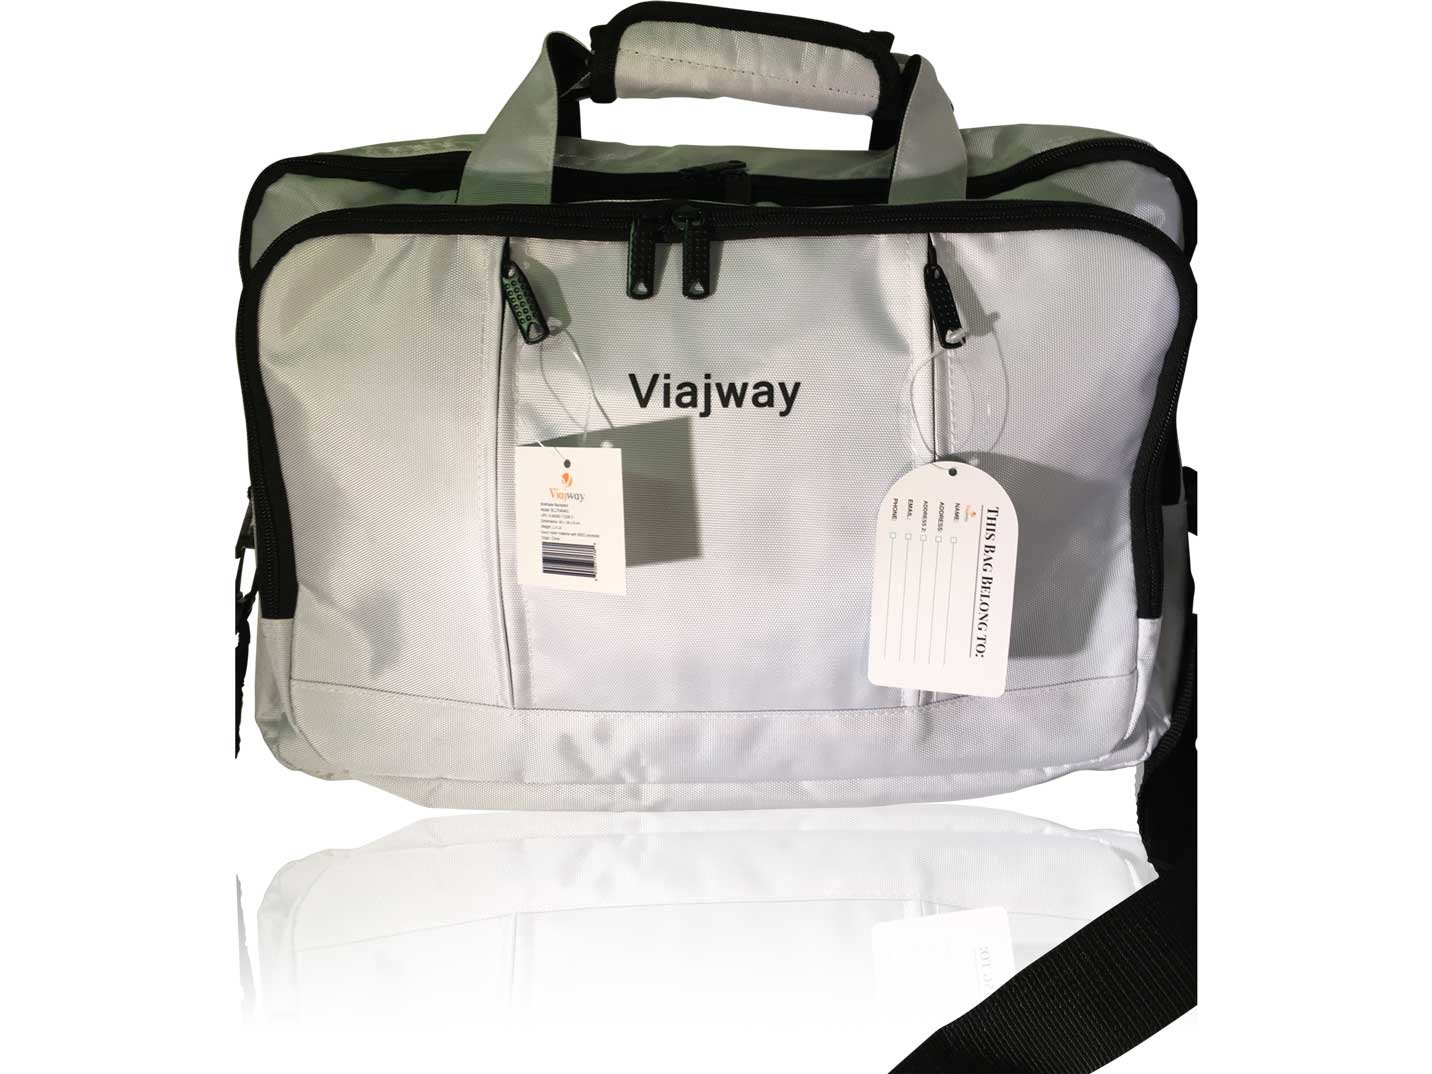 Viajway Multi-Functional Briefcase Backpack Travel Bag and Laptop Bag, White